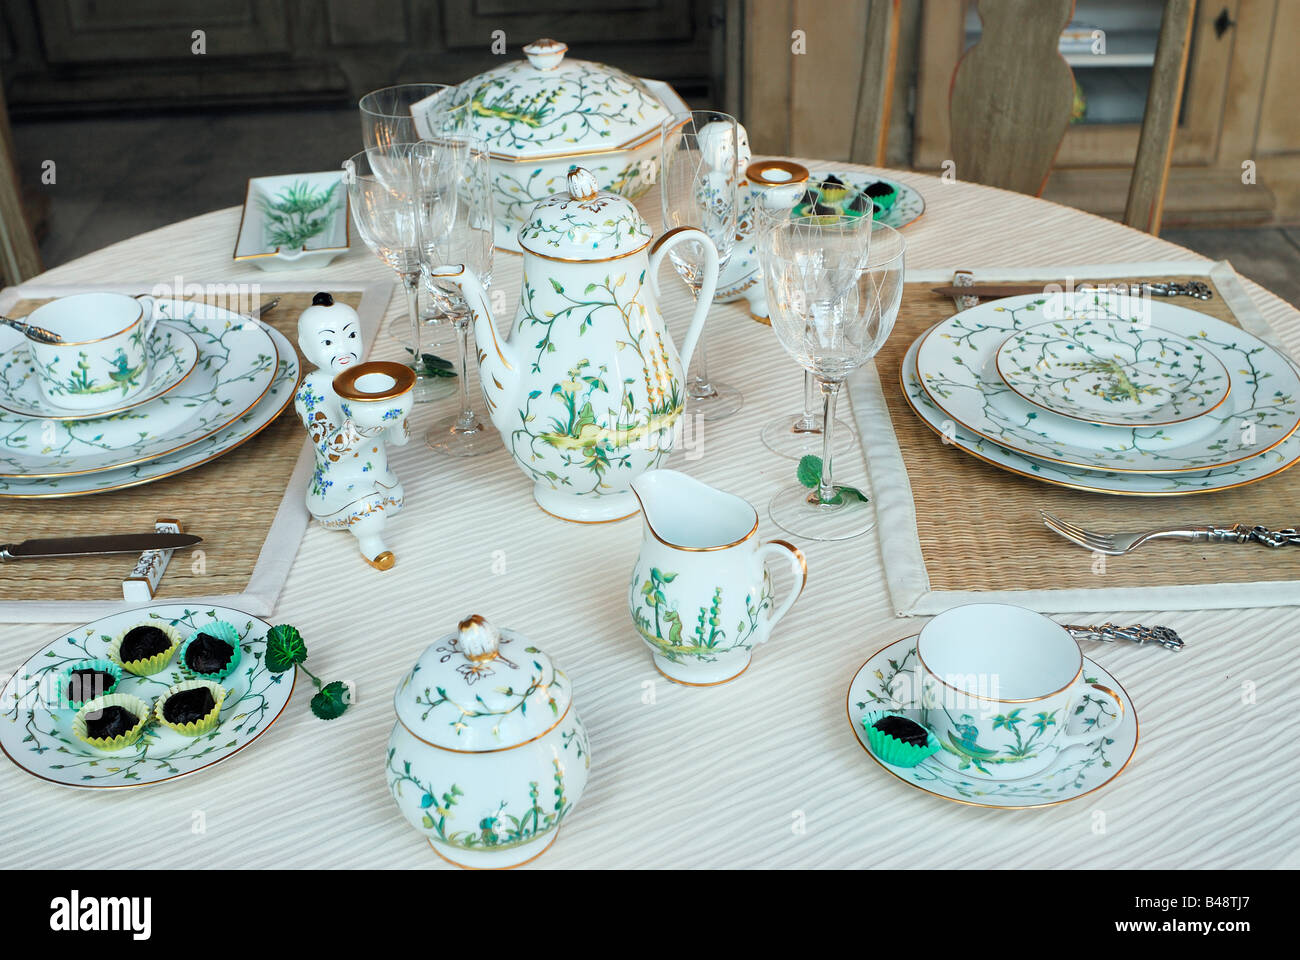 Paris France, Shopping French Ceramics Store Table Setting on ...